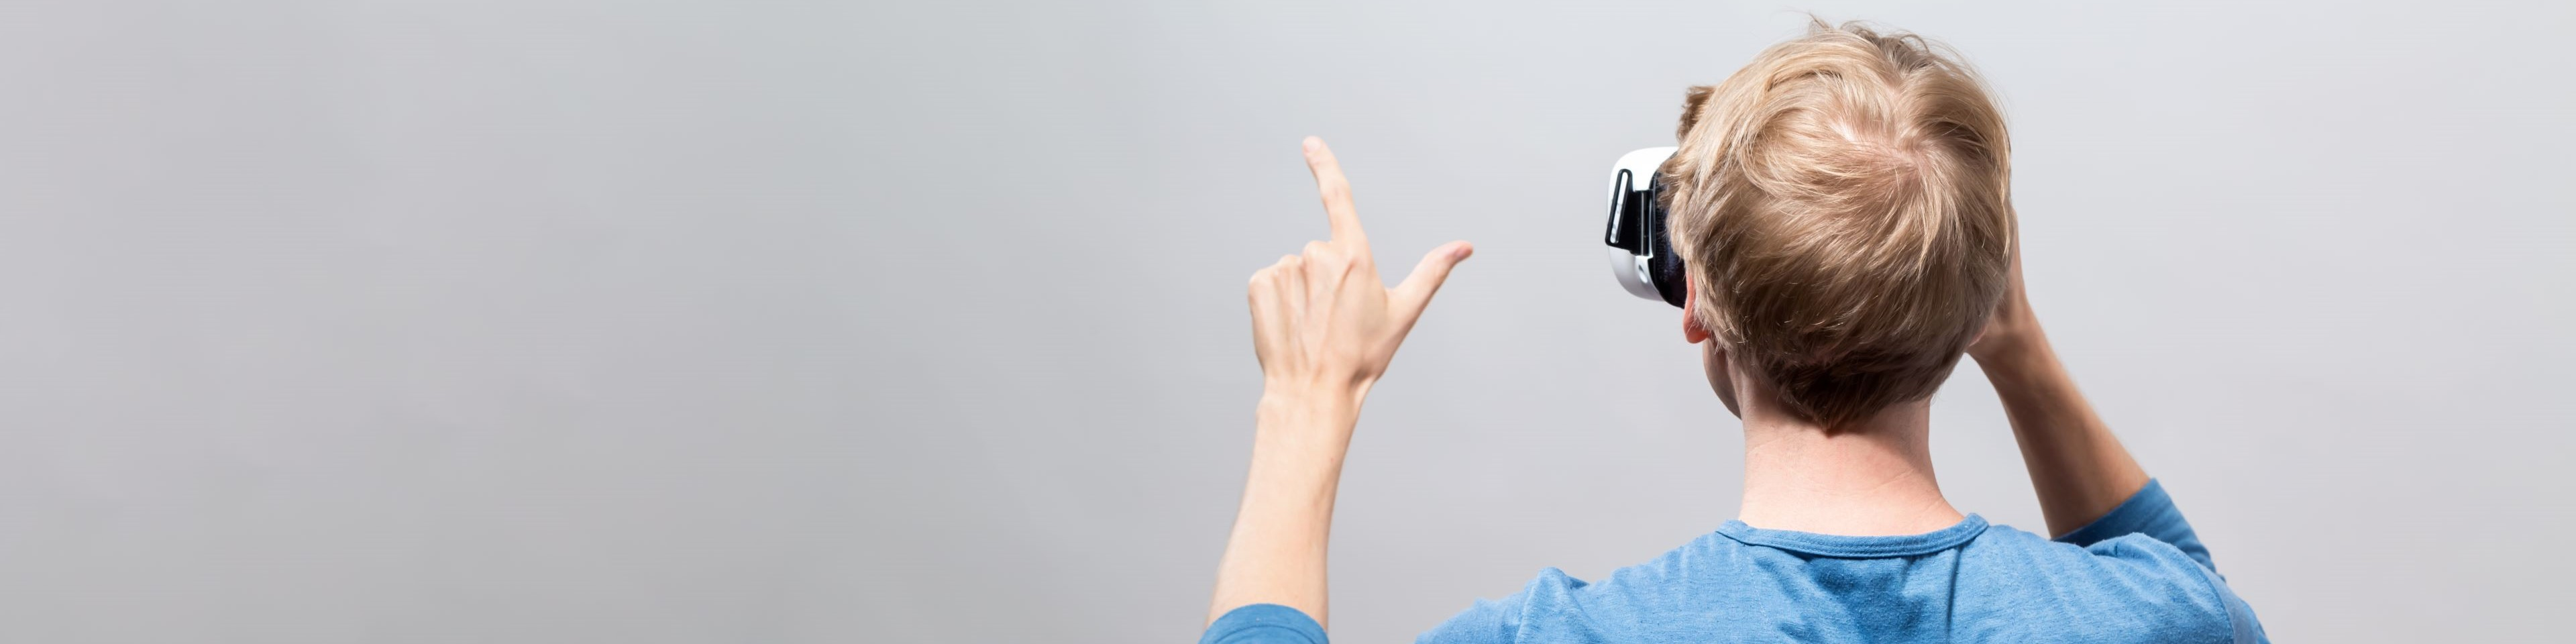 Mixed reality in medical education: Virtual patient interactions in real-world settings